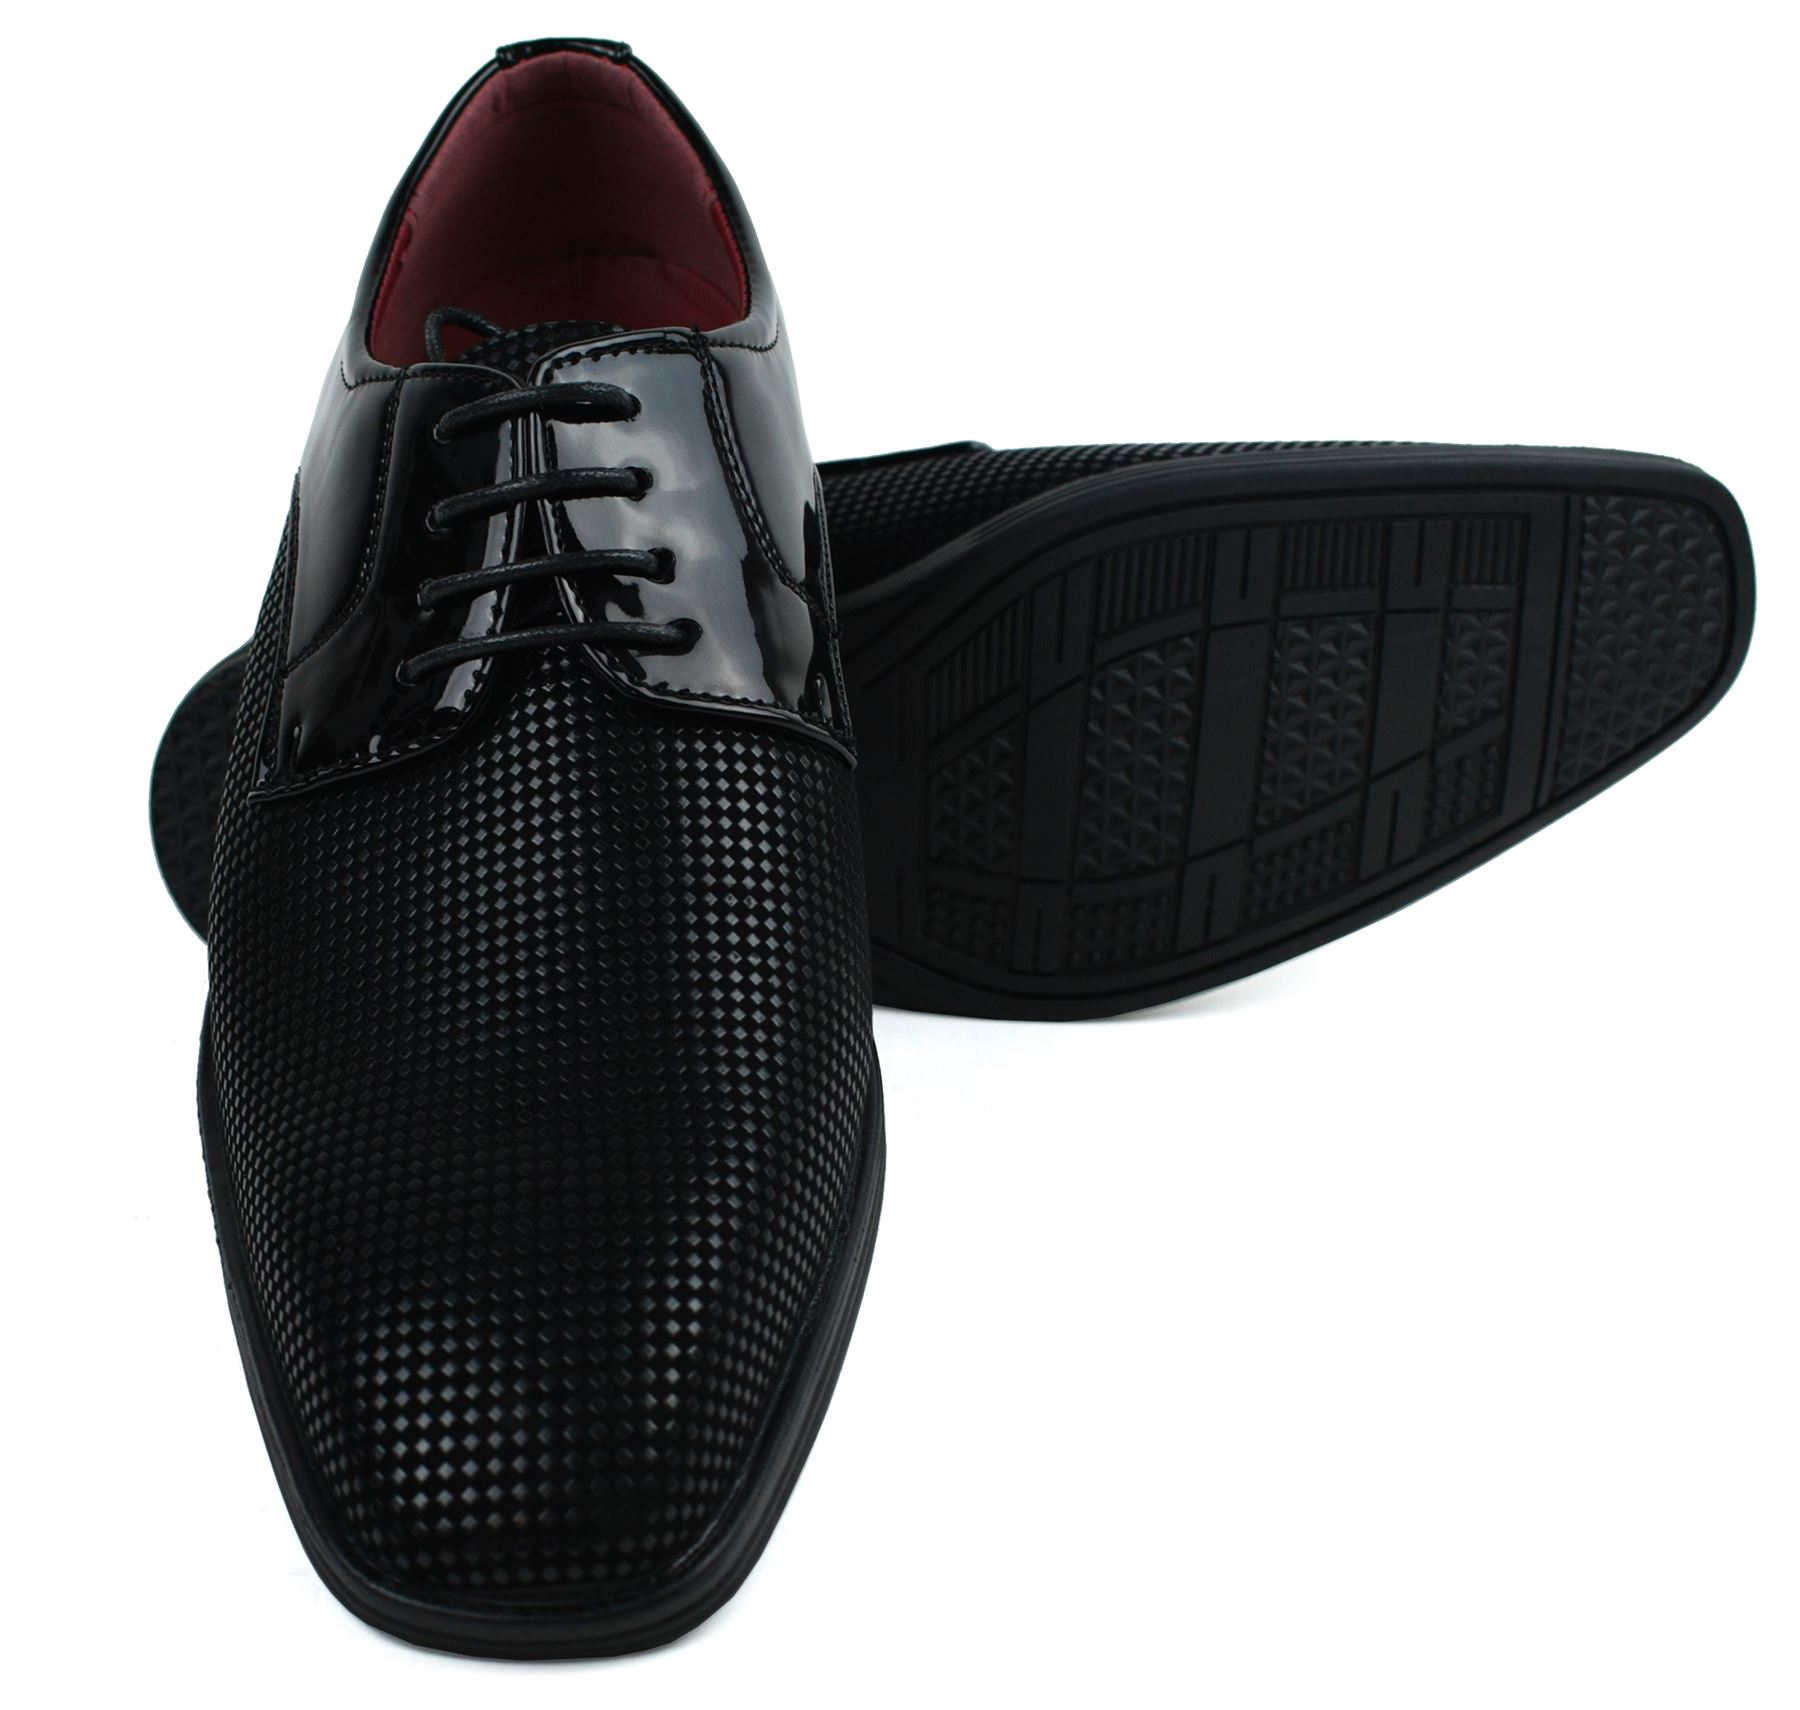 Mens-UK-Style-Leather-Lining-Formal-Office-Wedding-Smart-Work-Brogue-Shoes thumbnail 92